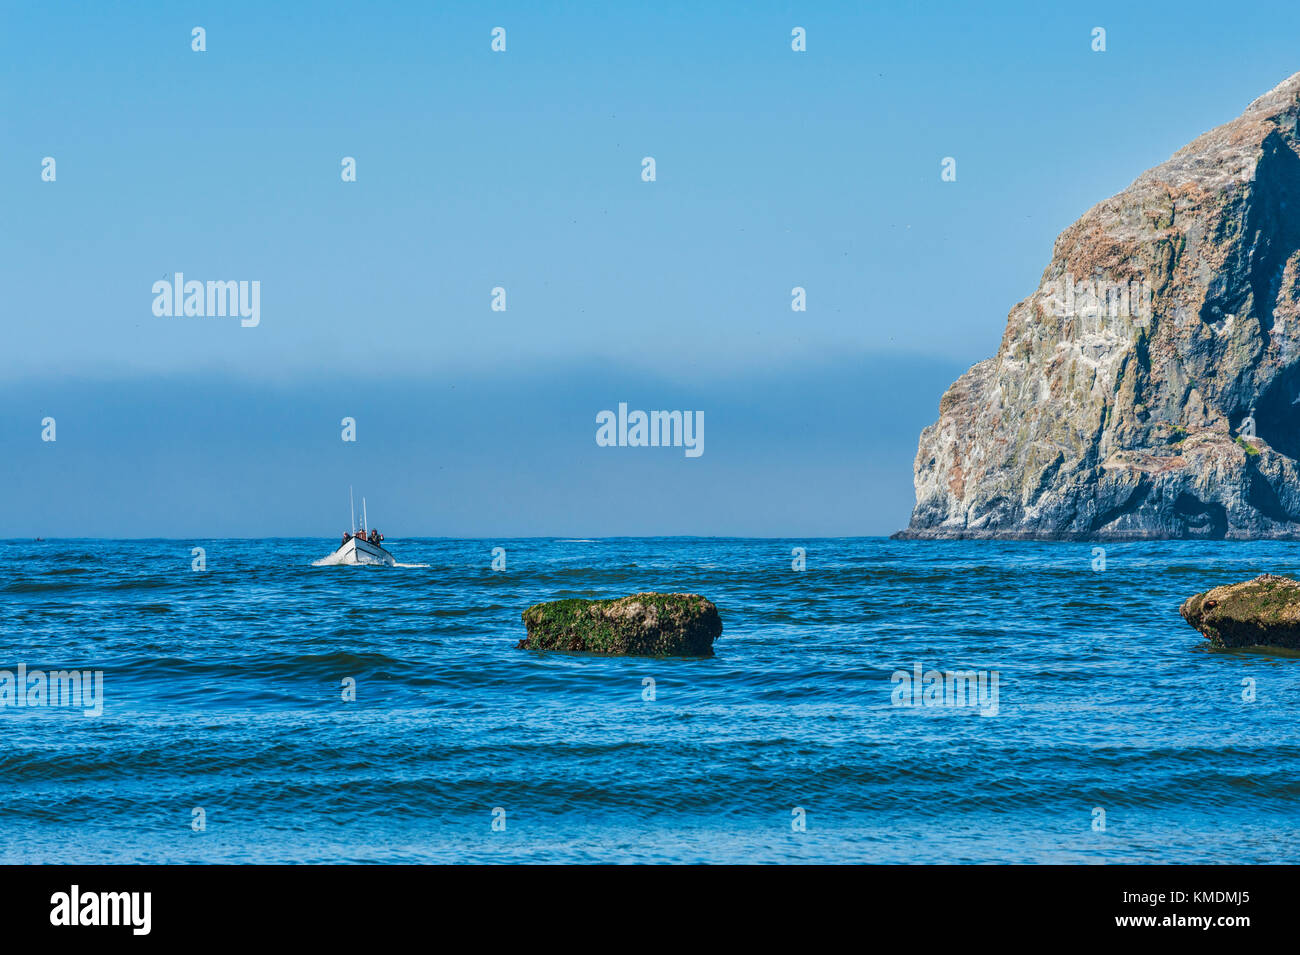 Pacific City, Oregon, USA - July 2, 2015: A dory boat passes by Haystack Rock as he makes his approach to land on - Stock Image